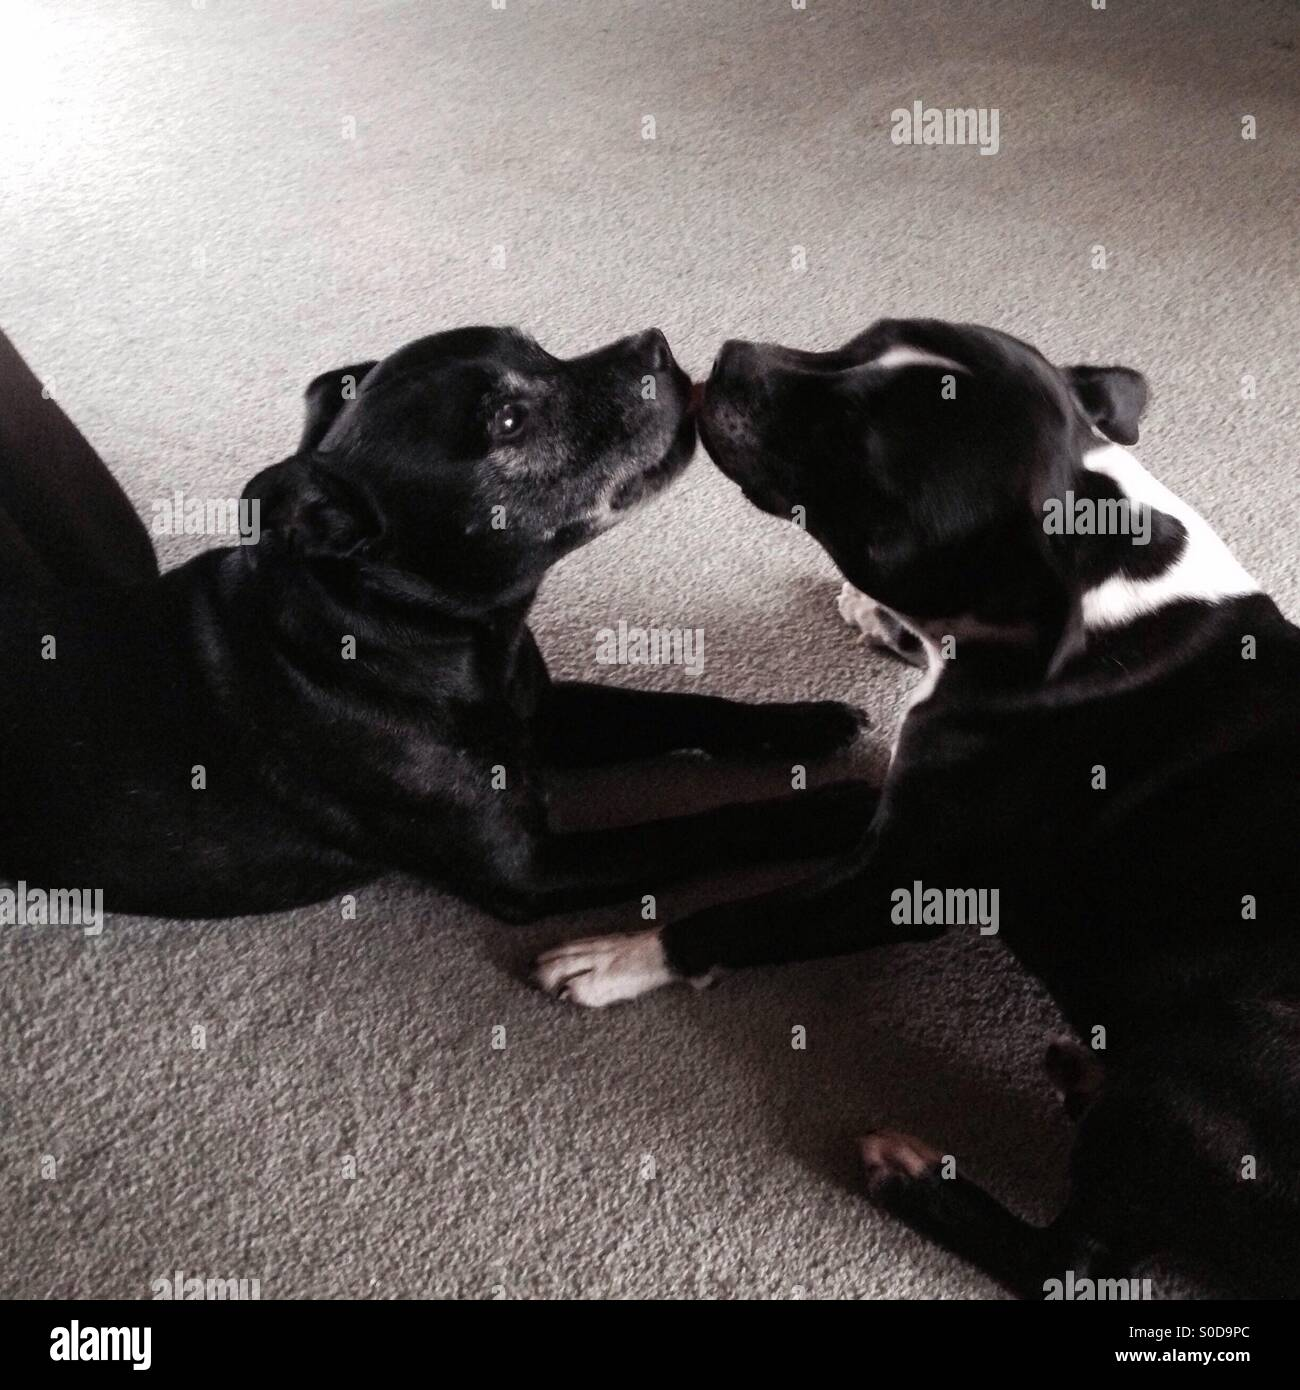 American Staffordshire Terriers kissing - Stock Image